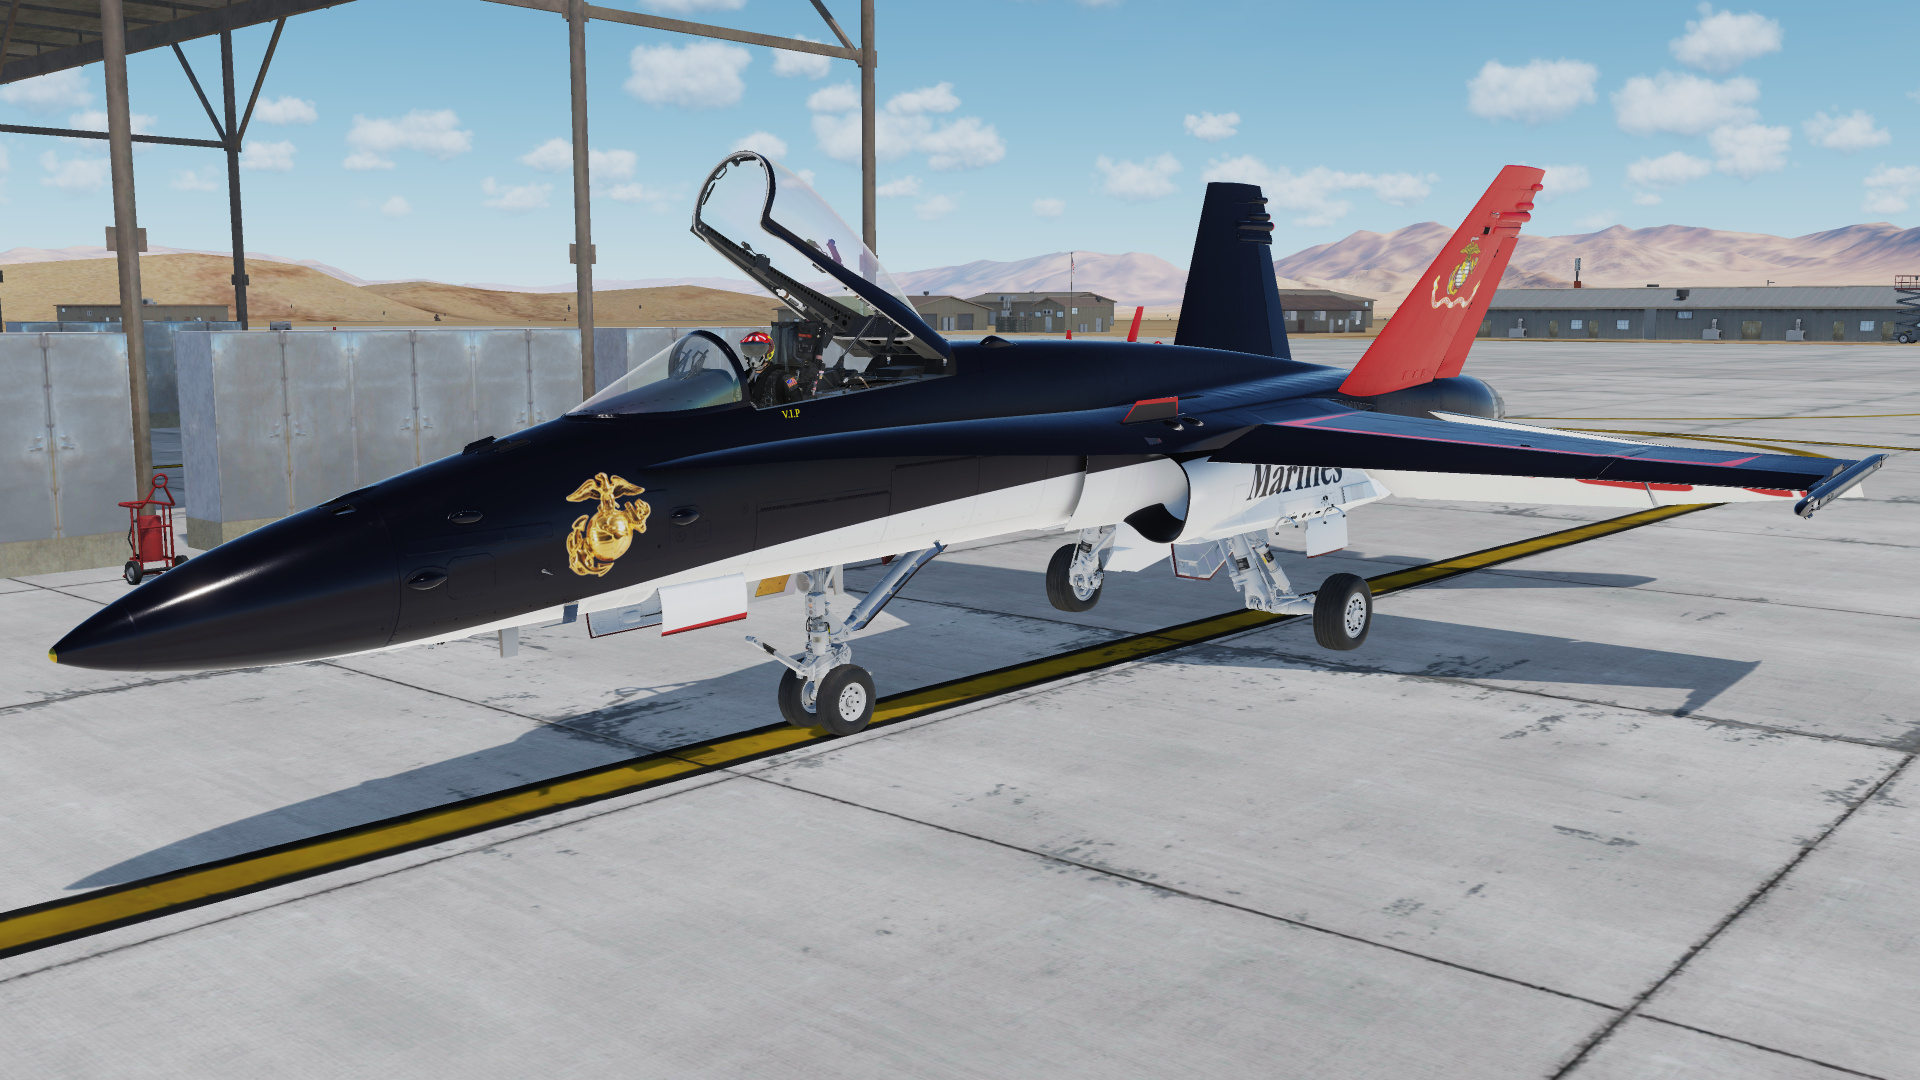 Fictional USMC F/A-18C in dress blue colors